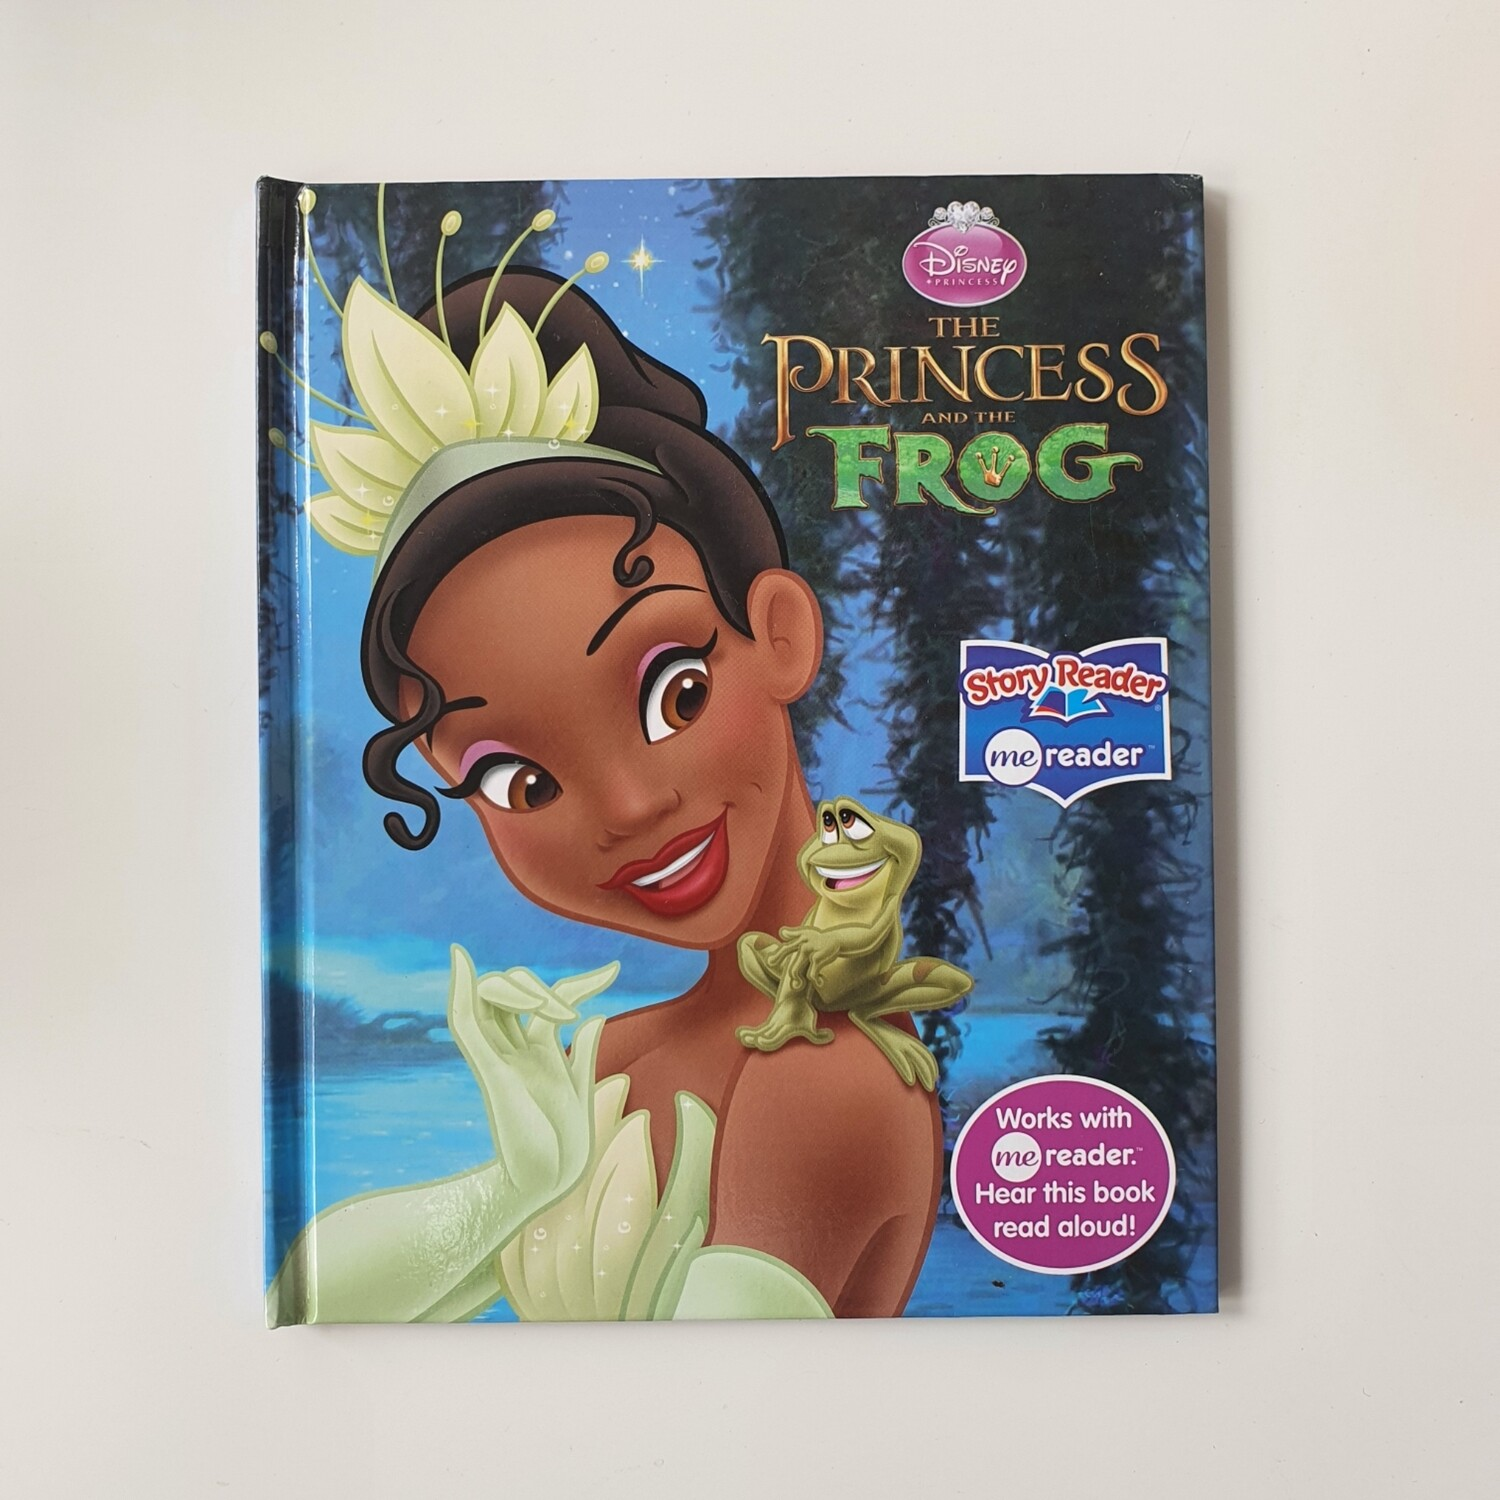 Princess and the Frog Notebook - no original book pages included